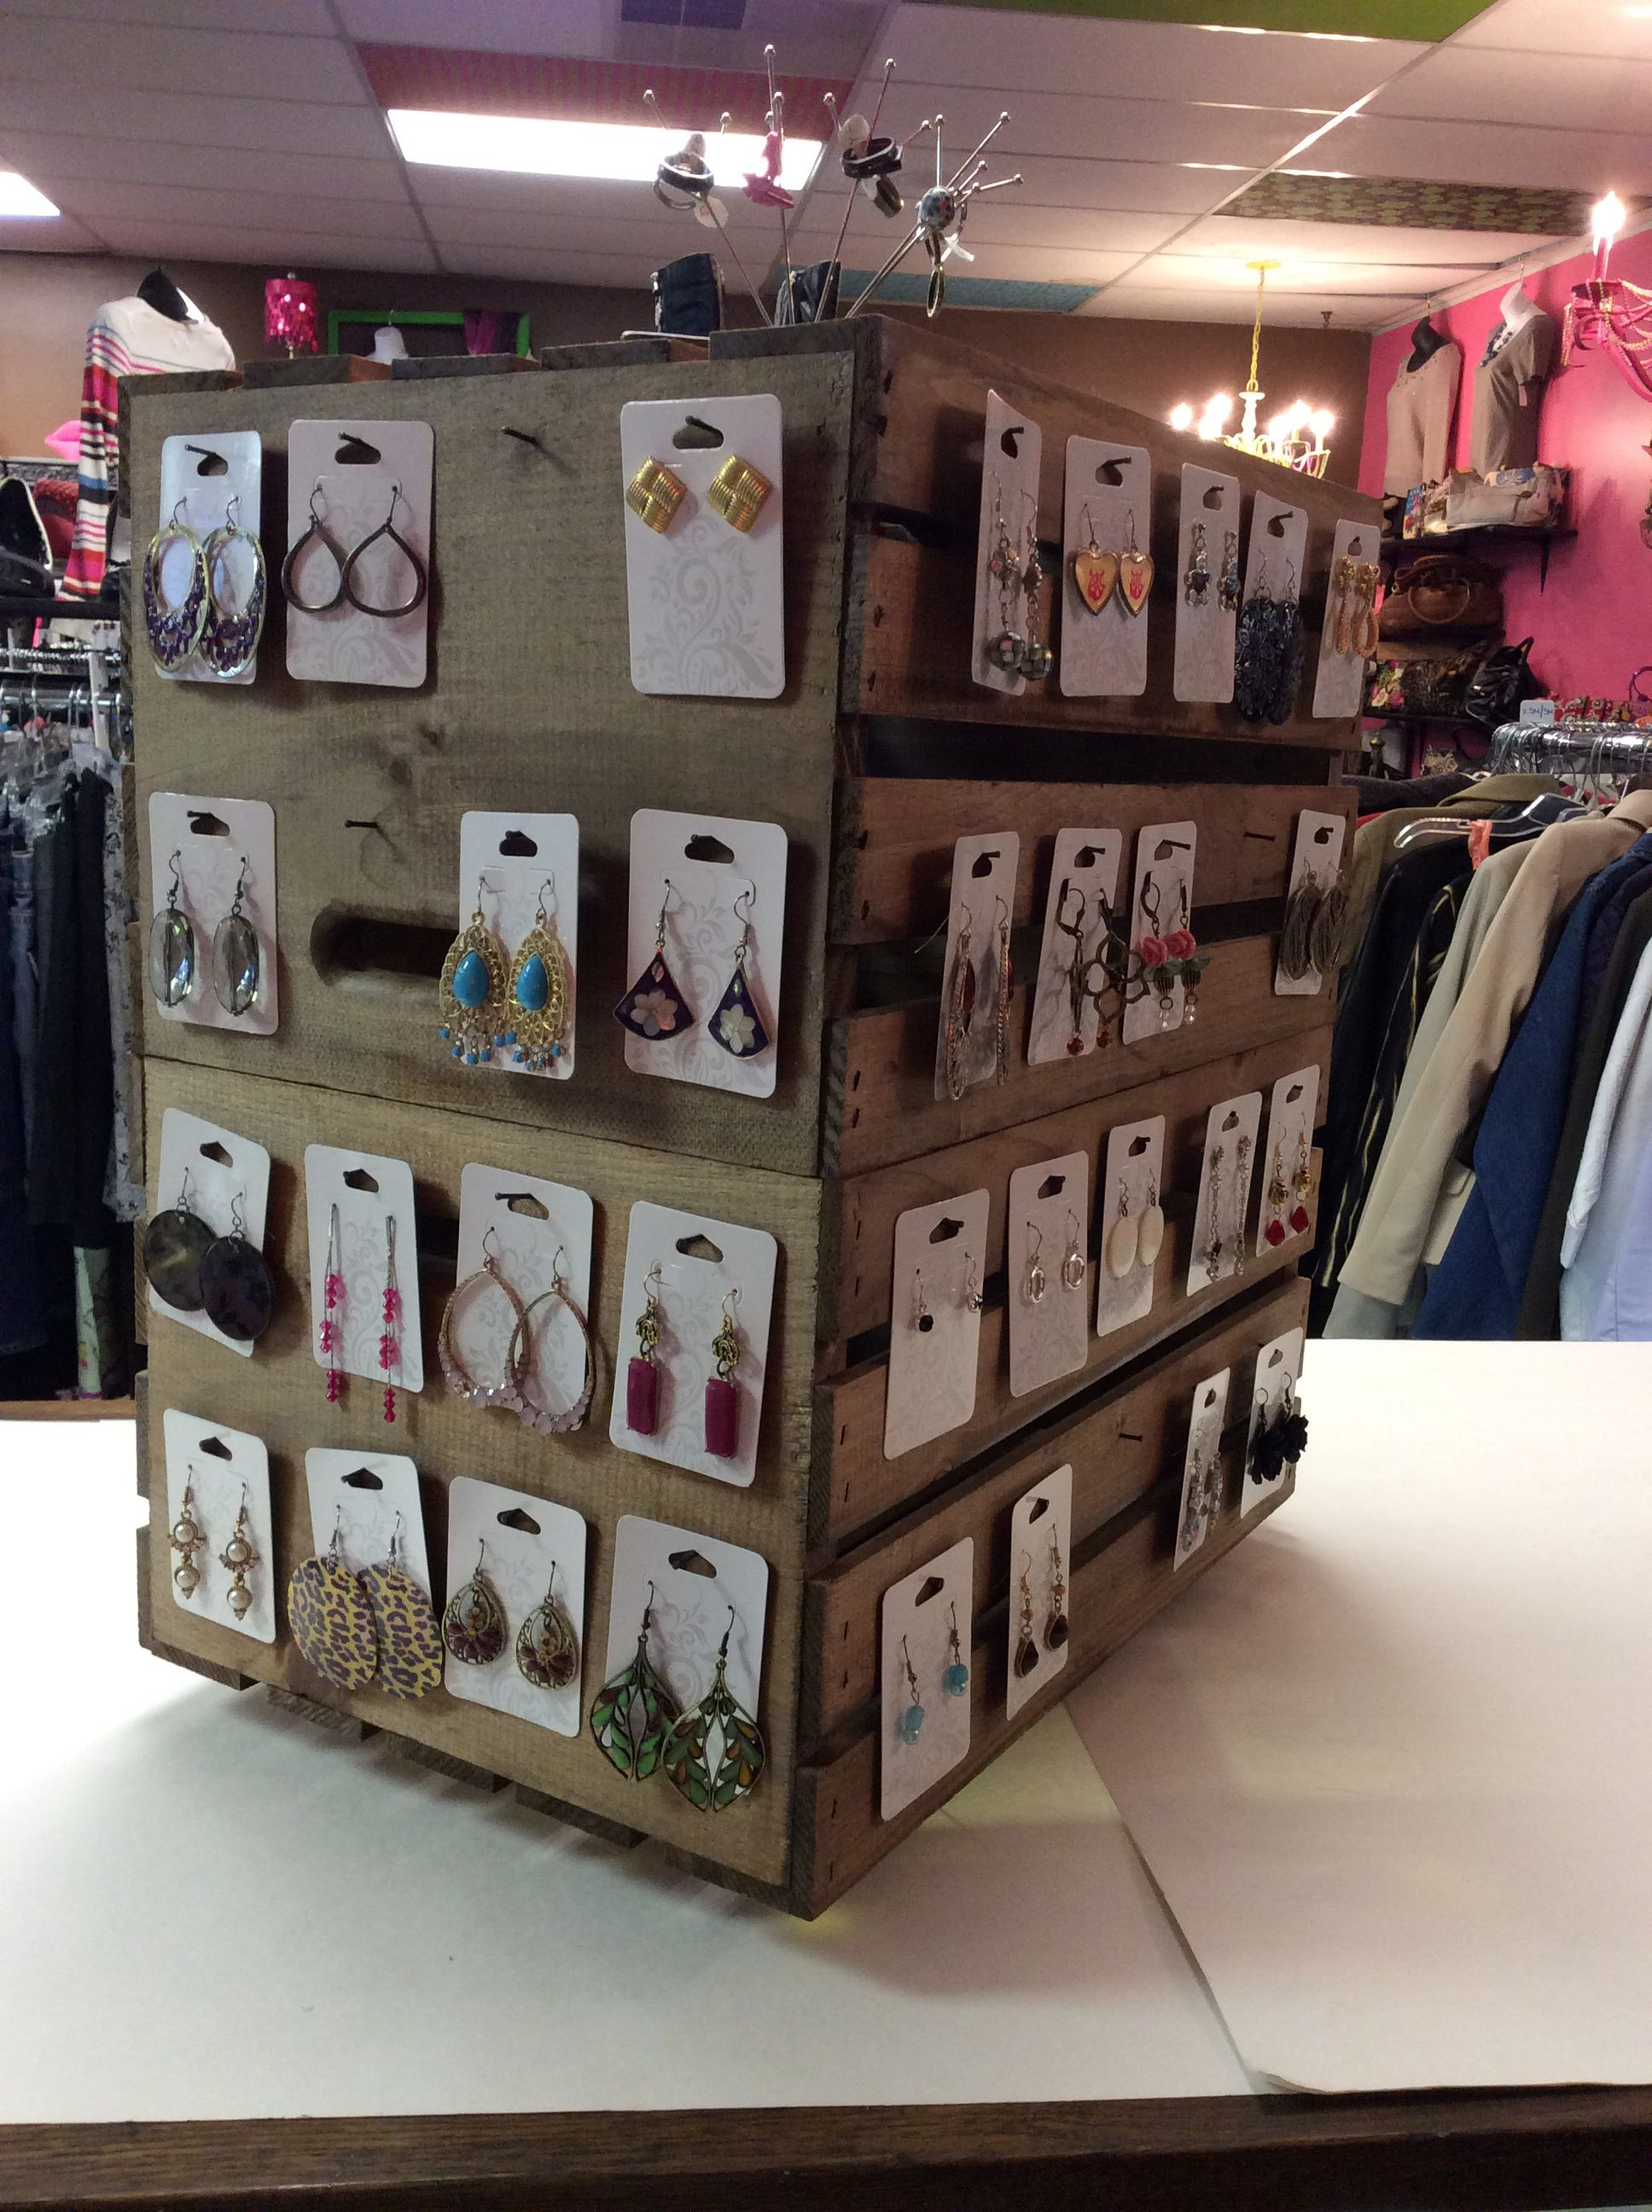 Our New Earring Display Made By Staining Two Wooden Crates